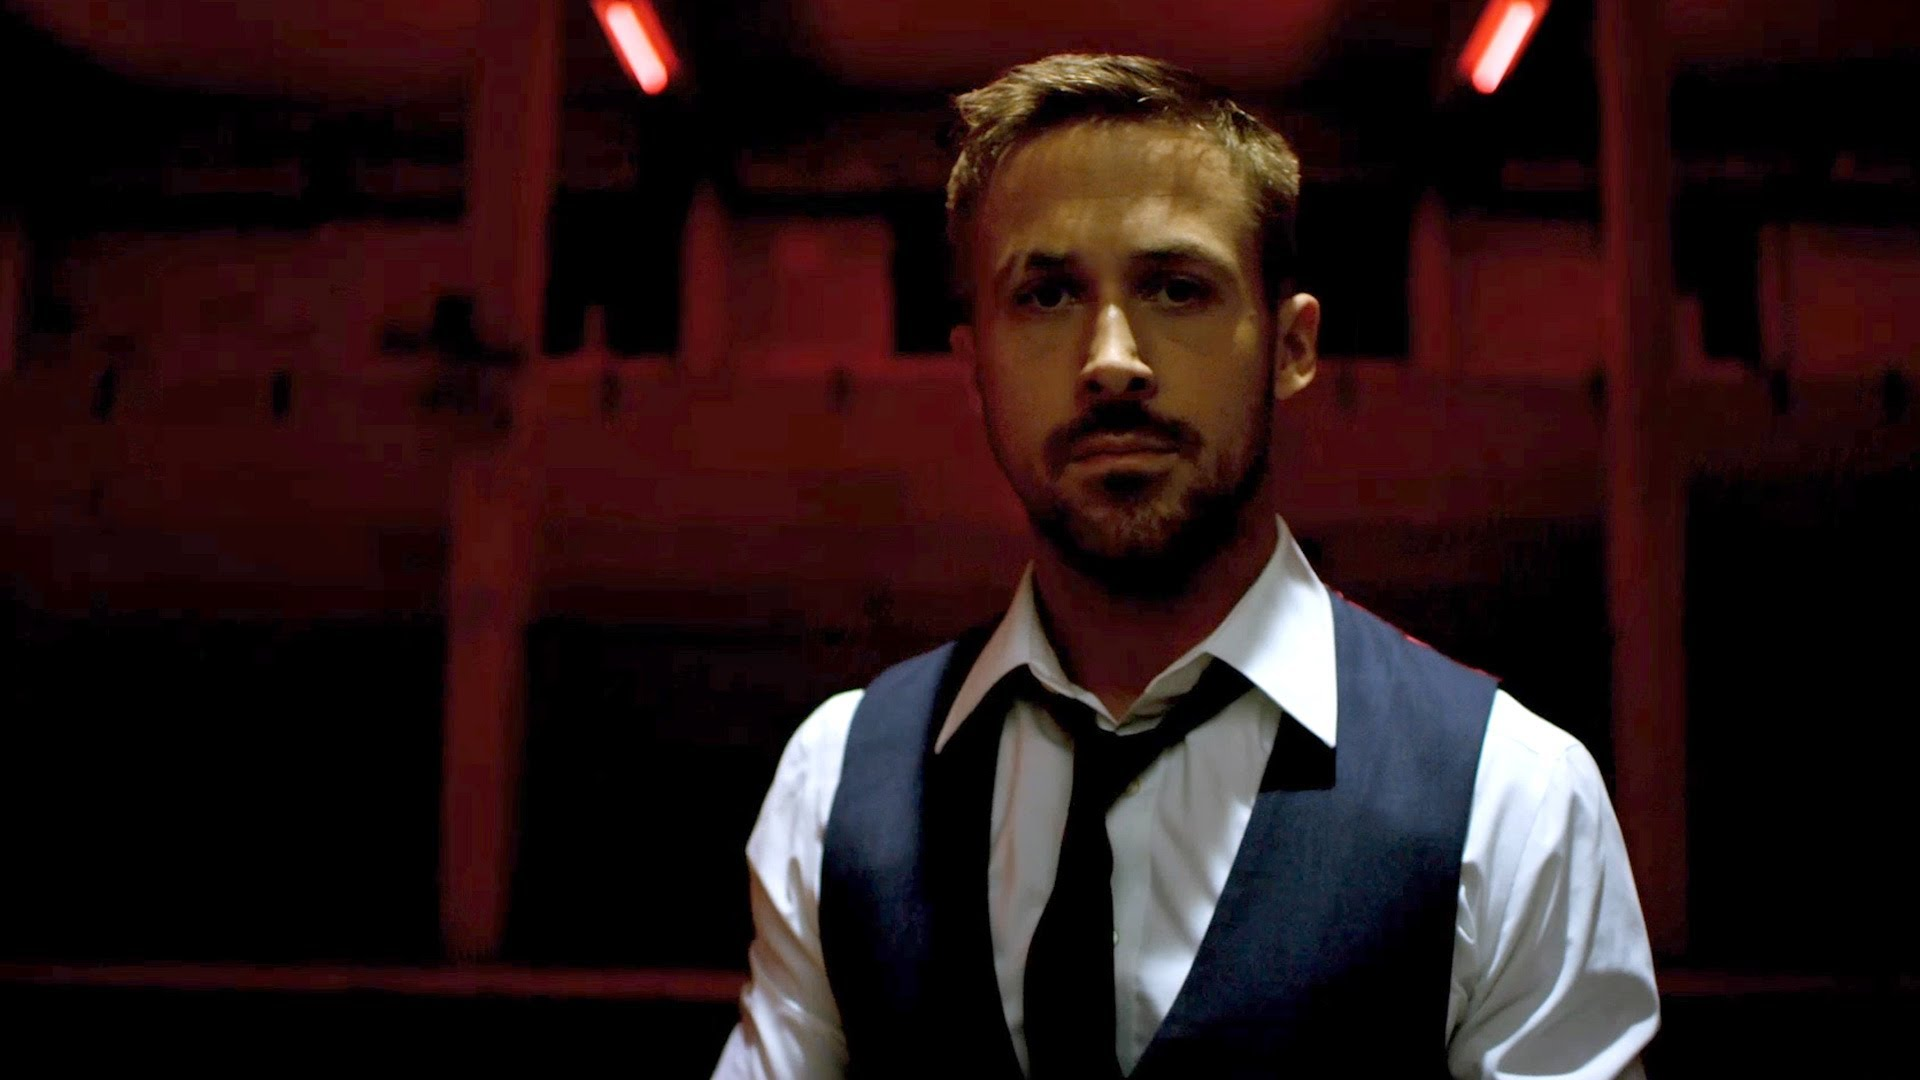 HQ Only God Forgives Wallpapers | File 145.7Kb